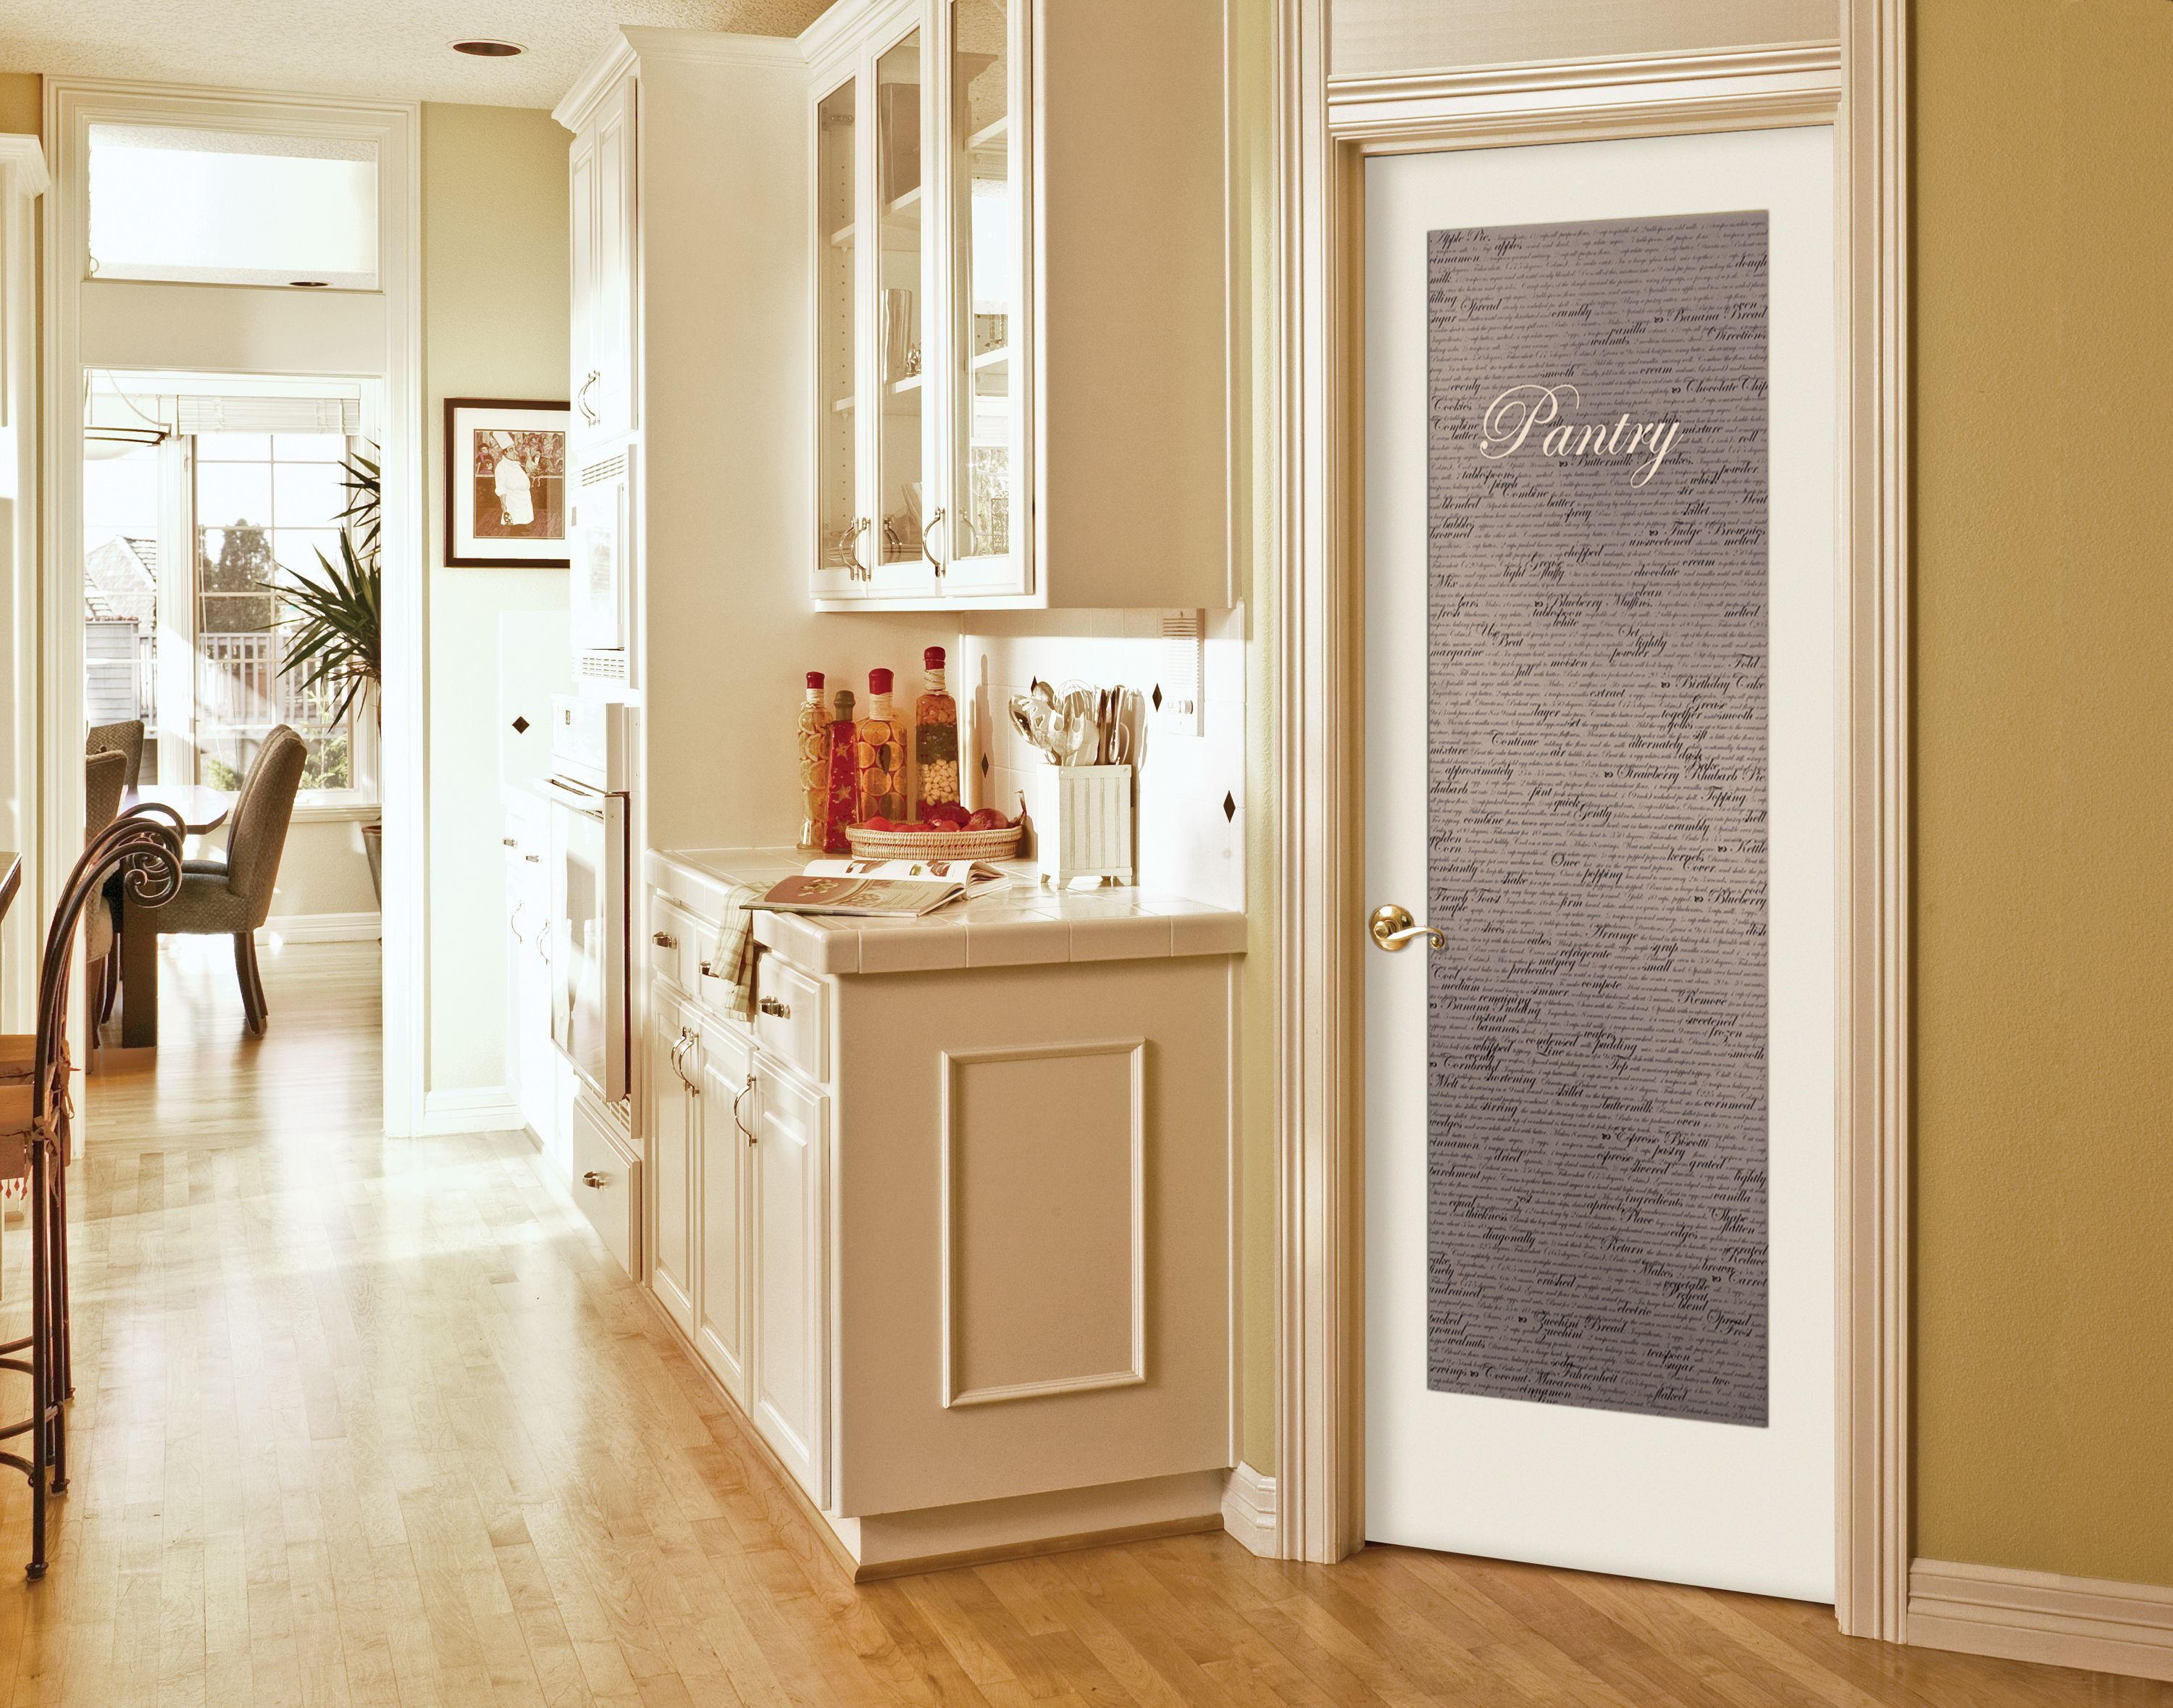 Glass Pocket Doors For Sale - Photos of sliding pantry door design ideas for eye catching interior